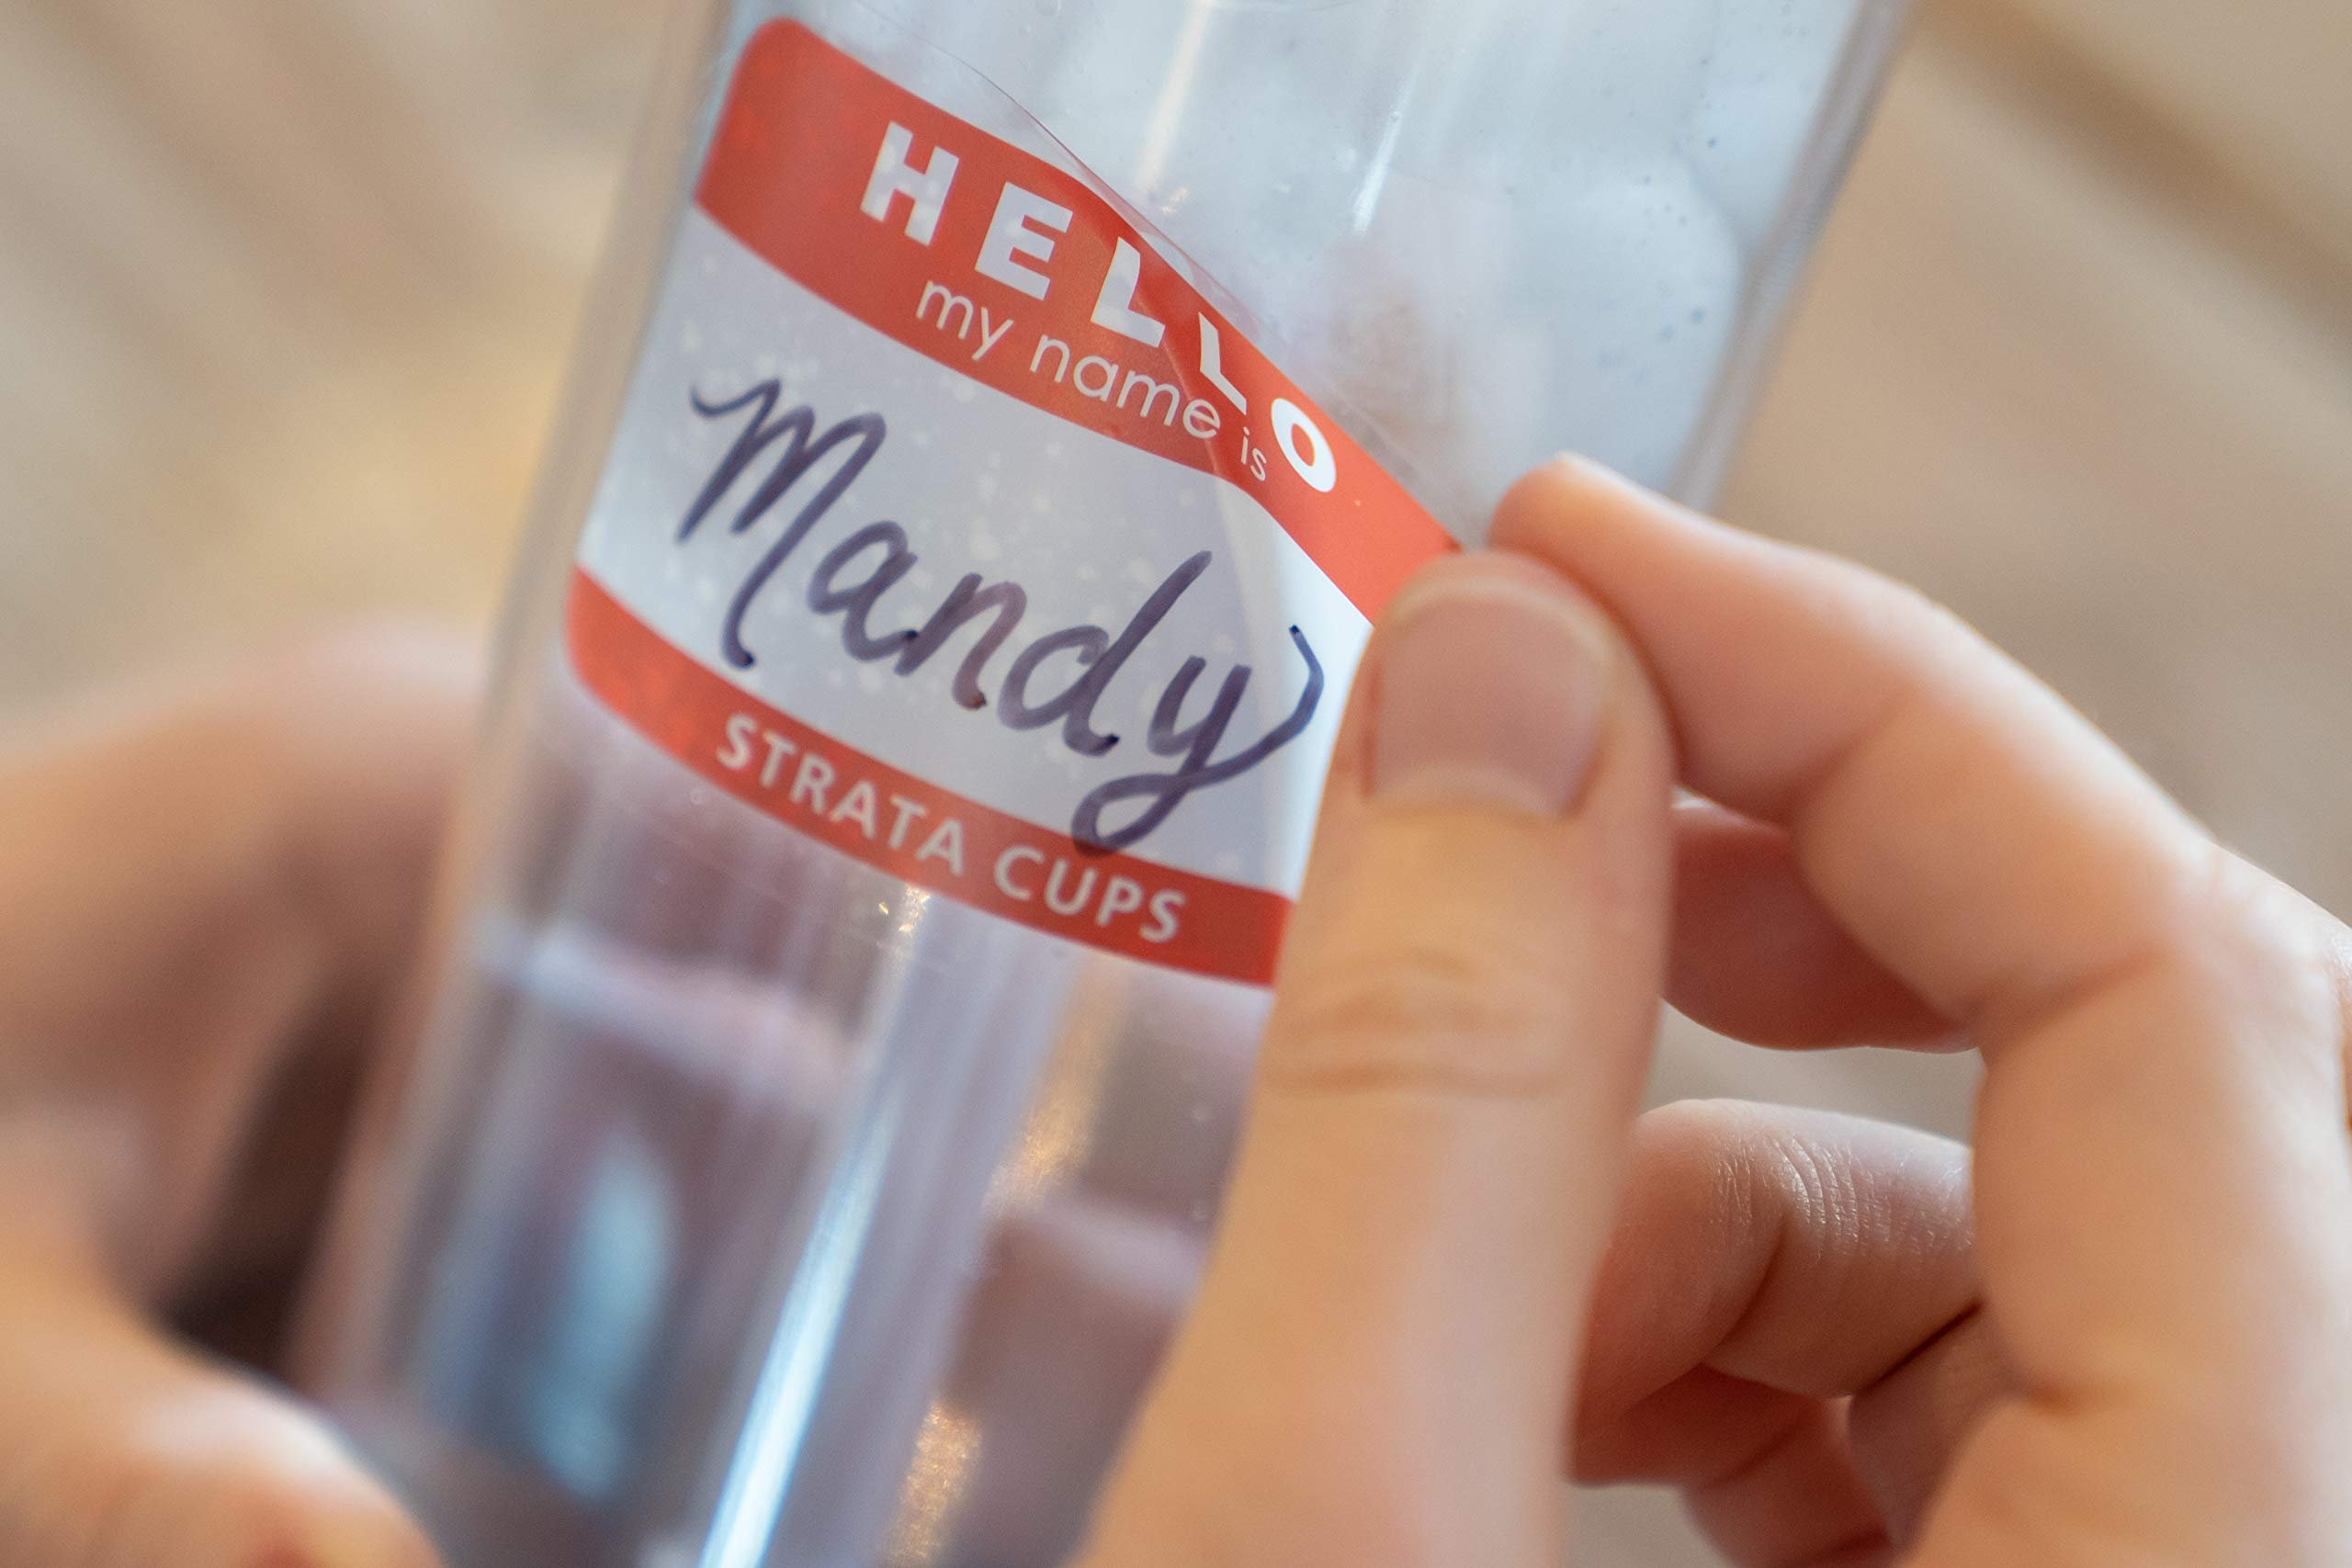 Strata Cups Skinny Tumblers Clear Acrylic Tumbler with Lids and Straws | Skinny, 16 ounce Double Wall Clear Plastic Tumblers with Straw cleaner and Name Tags (Clear, 12) by STRATA CUPS (Image #6)